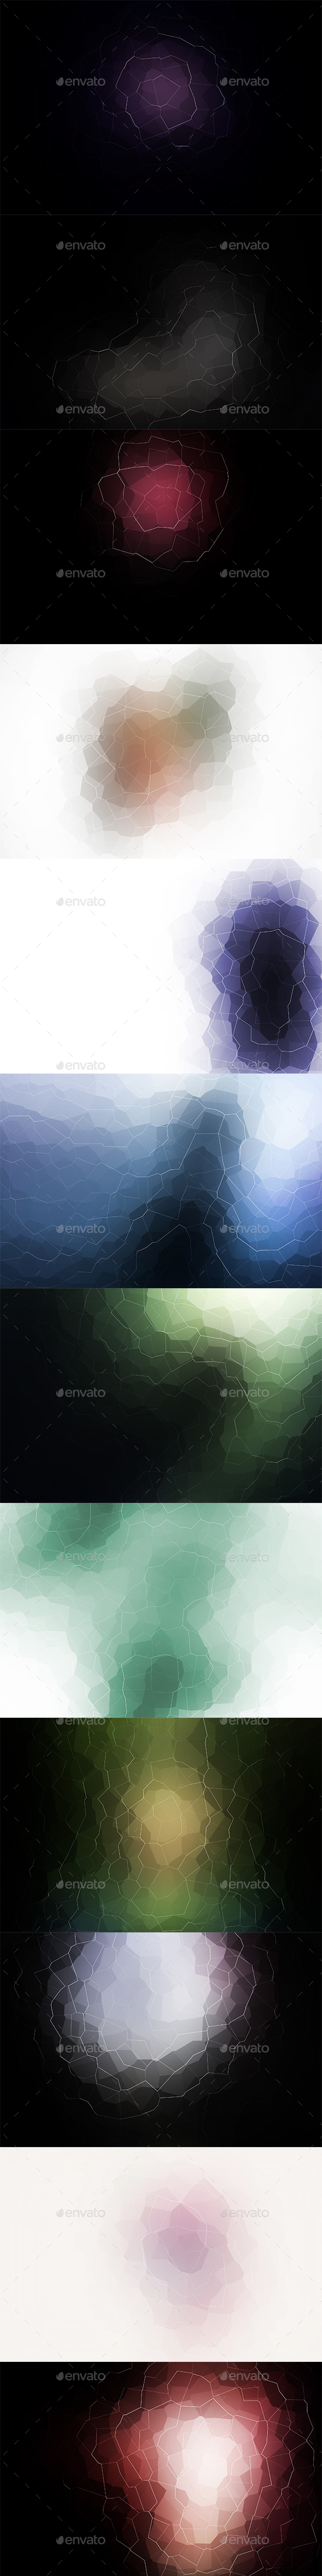 Crystallized Backgrounds Vol14 - Abstract Backgrounds